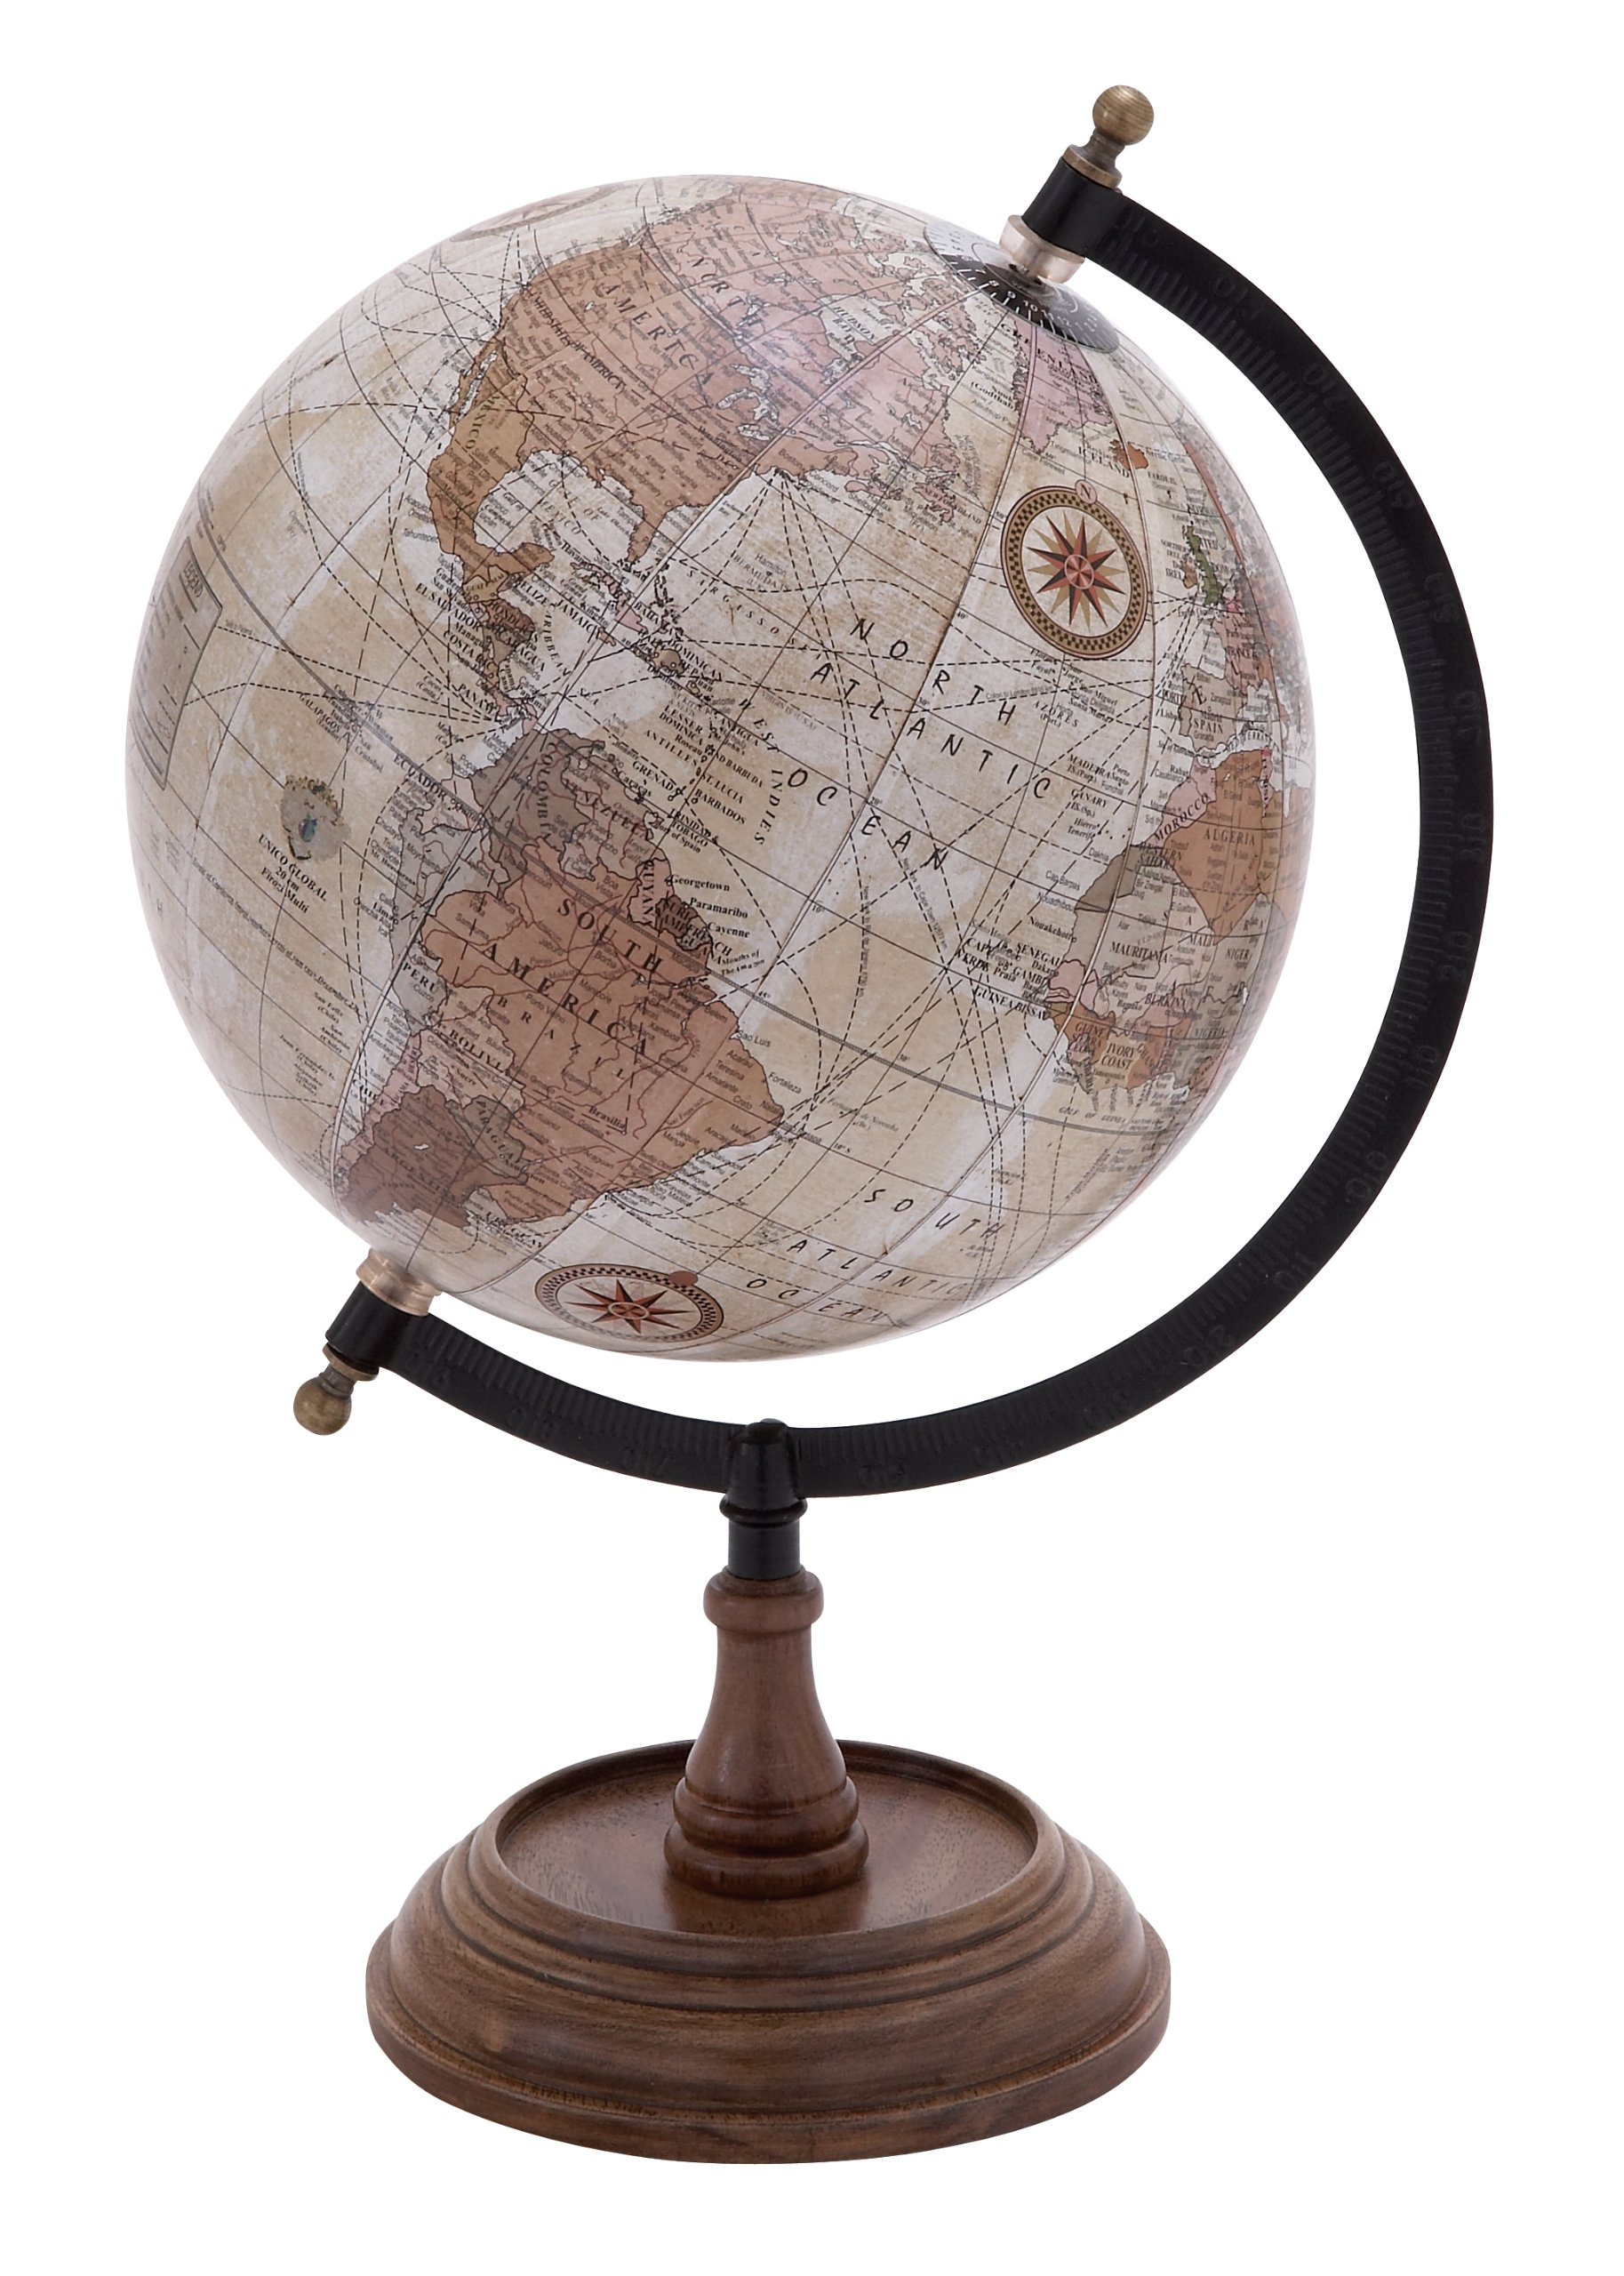 Deco 79 Traditional Wood, Metal, and Plastic Decorative Globe, 14''H,9''W, Multicolored Finish by Deco 79